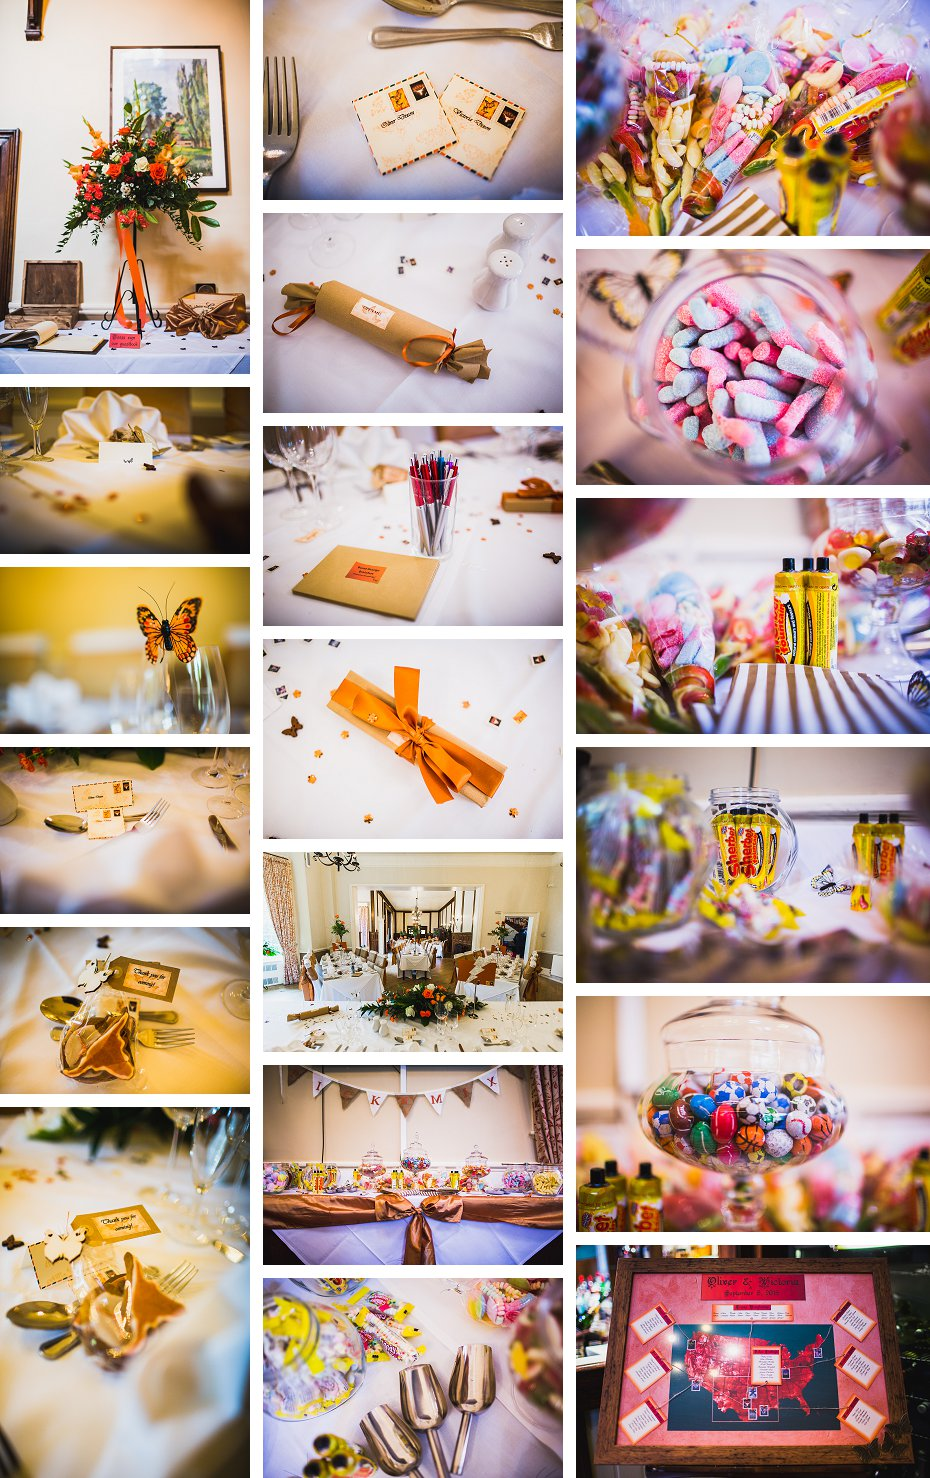 Vicky & Ollie - Merton College-Coseners wedding - 05-09-15  (1562 of 828)